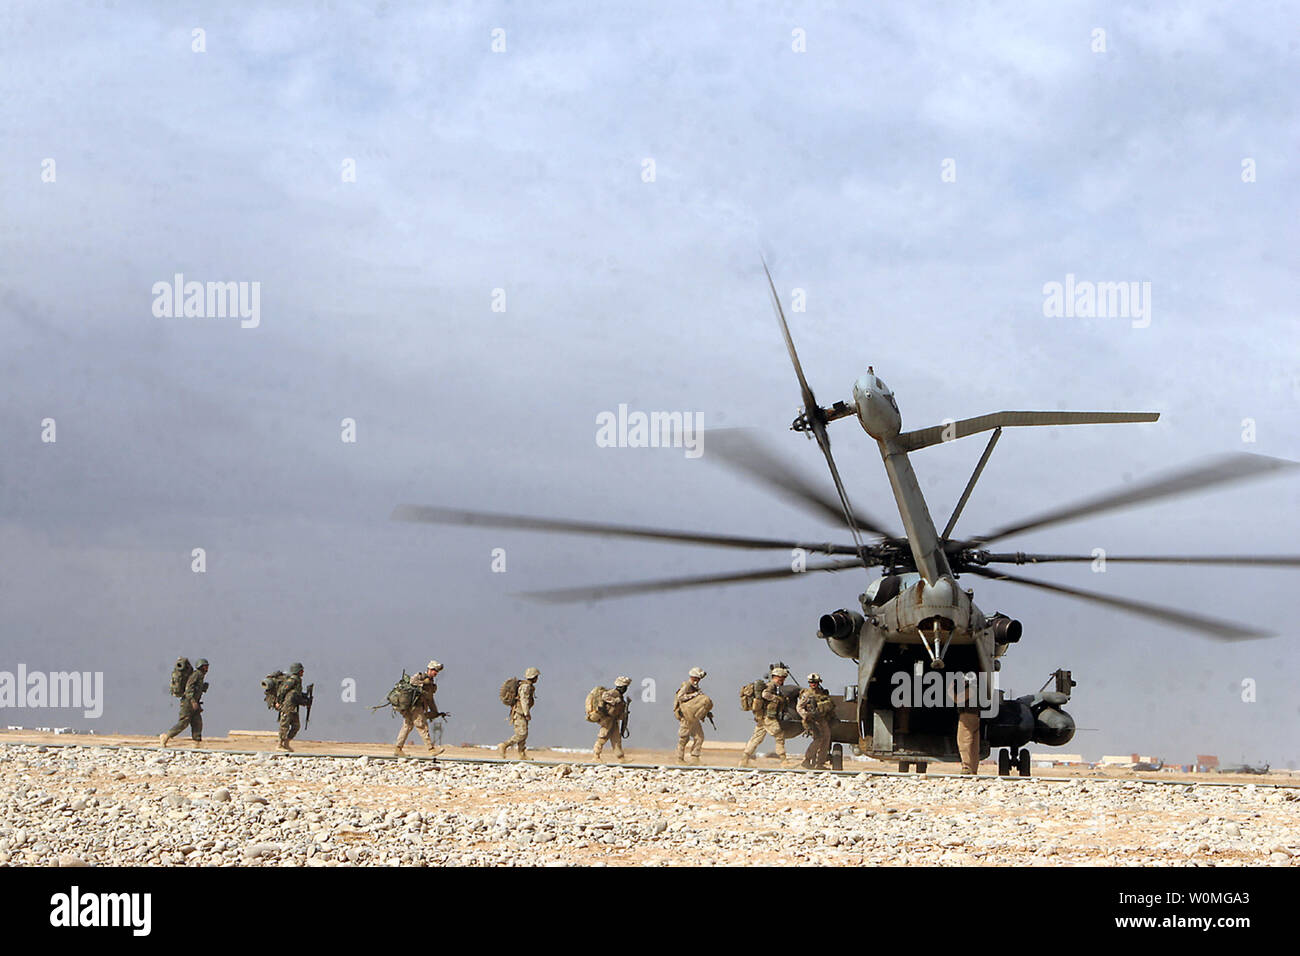 U.S. Marines conduct on and off drills on CH-53D 'Super Stallion' helicopters in Camp Dwyer, Helmand province, Afghanistan on January 23, 2010.  UPI/Samuel A. Nasso/U.S. Marine Corps - Stock Image